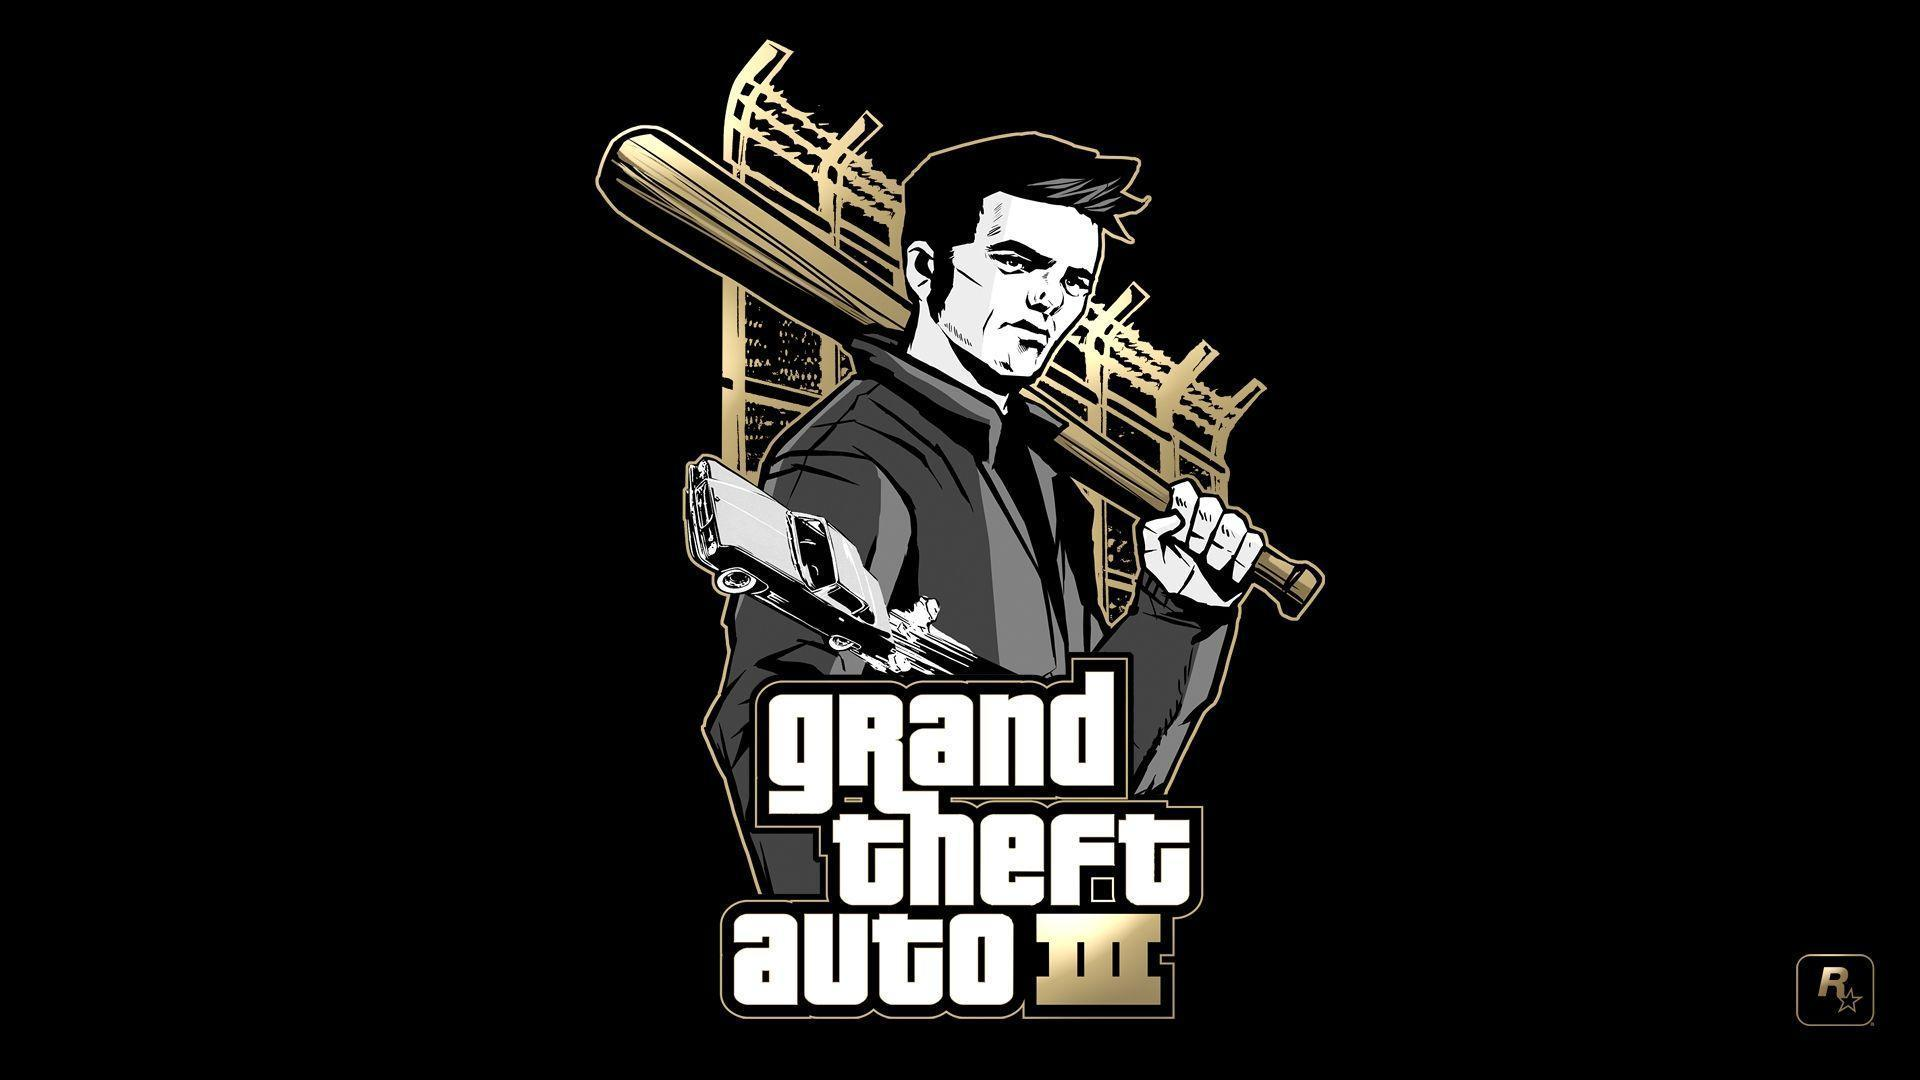 Full Hd P Grand Theft Auto  Wallpapers Hd Desktop